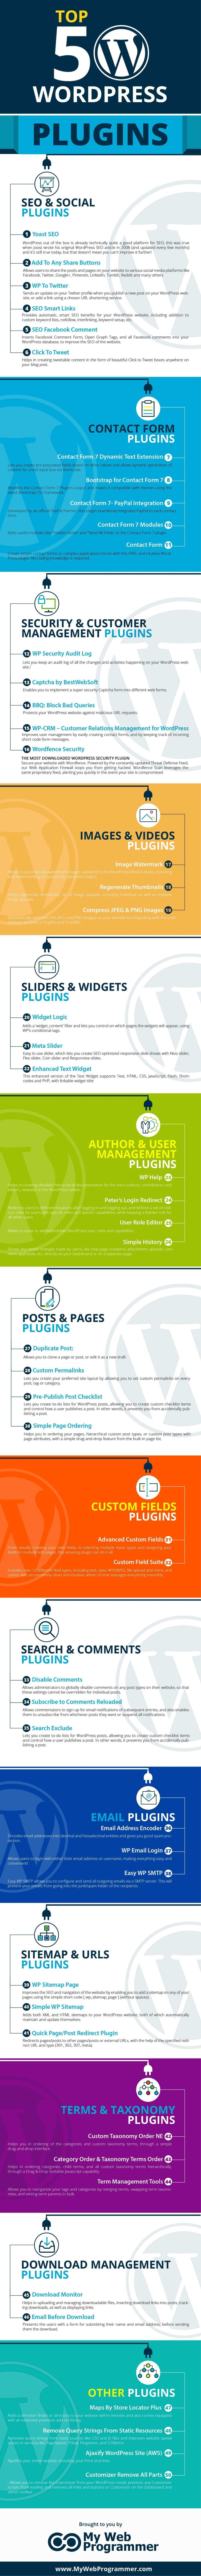 Top 50 WordPress Plugins #Infographic #WordPress